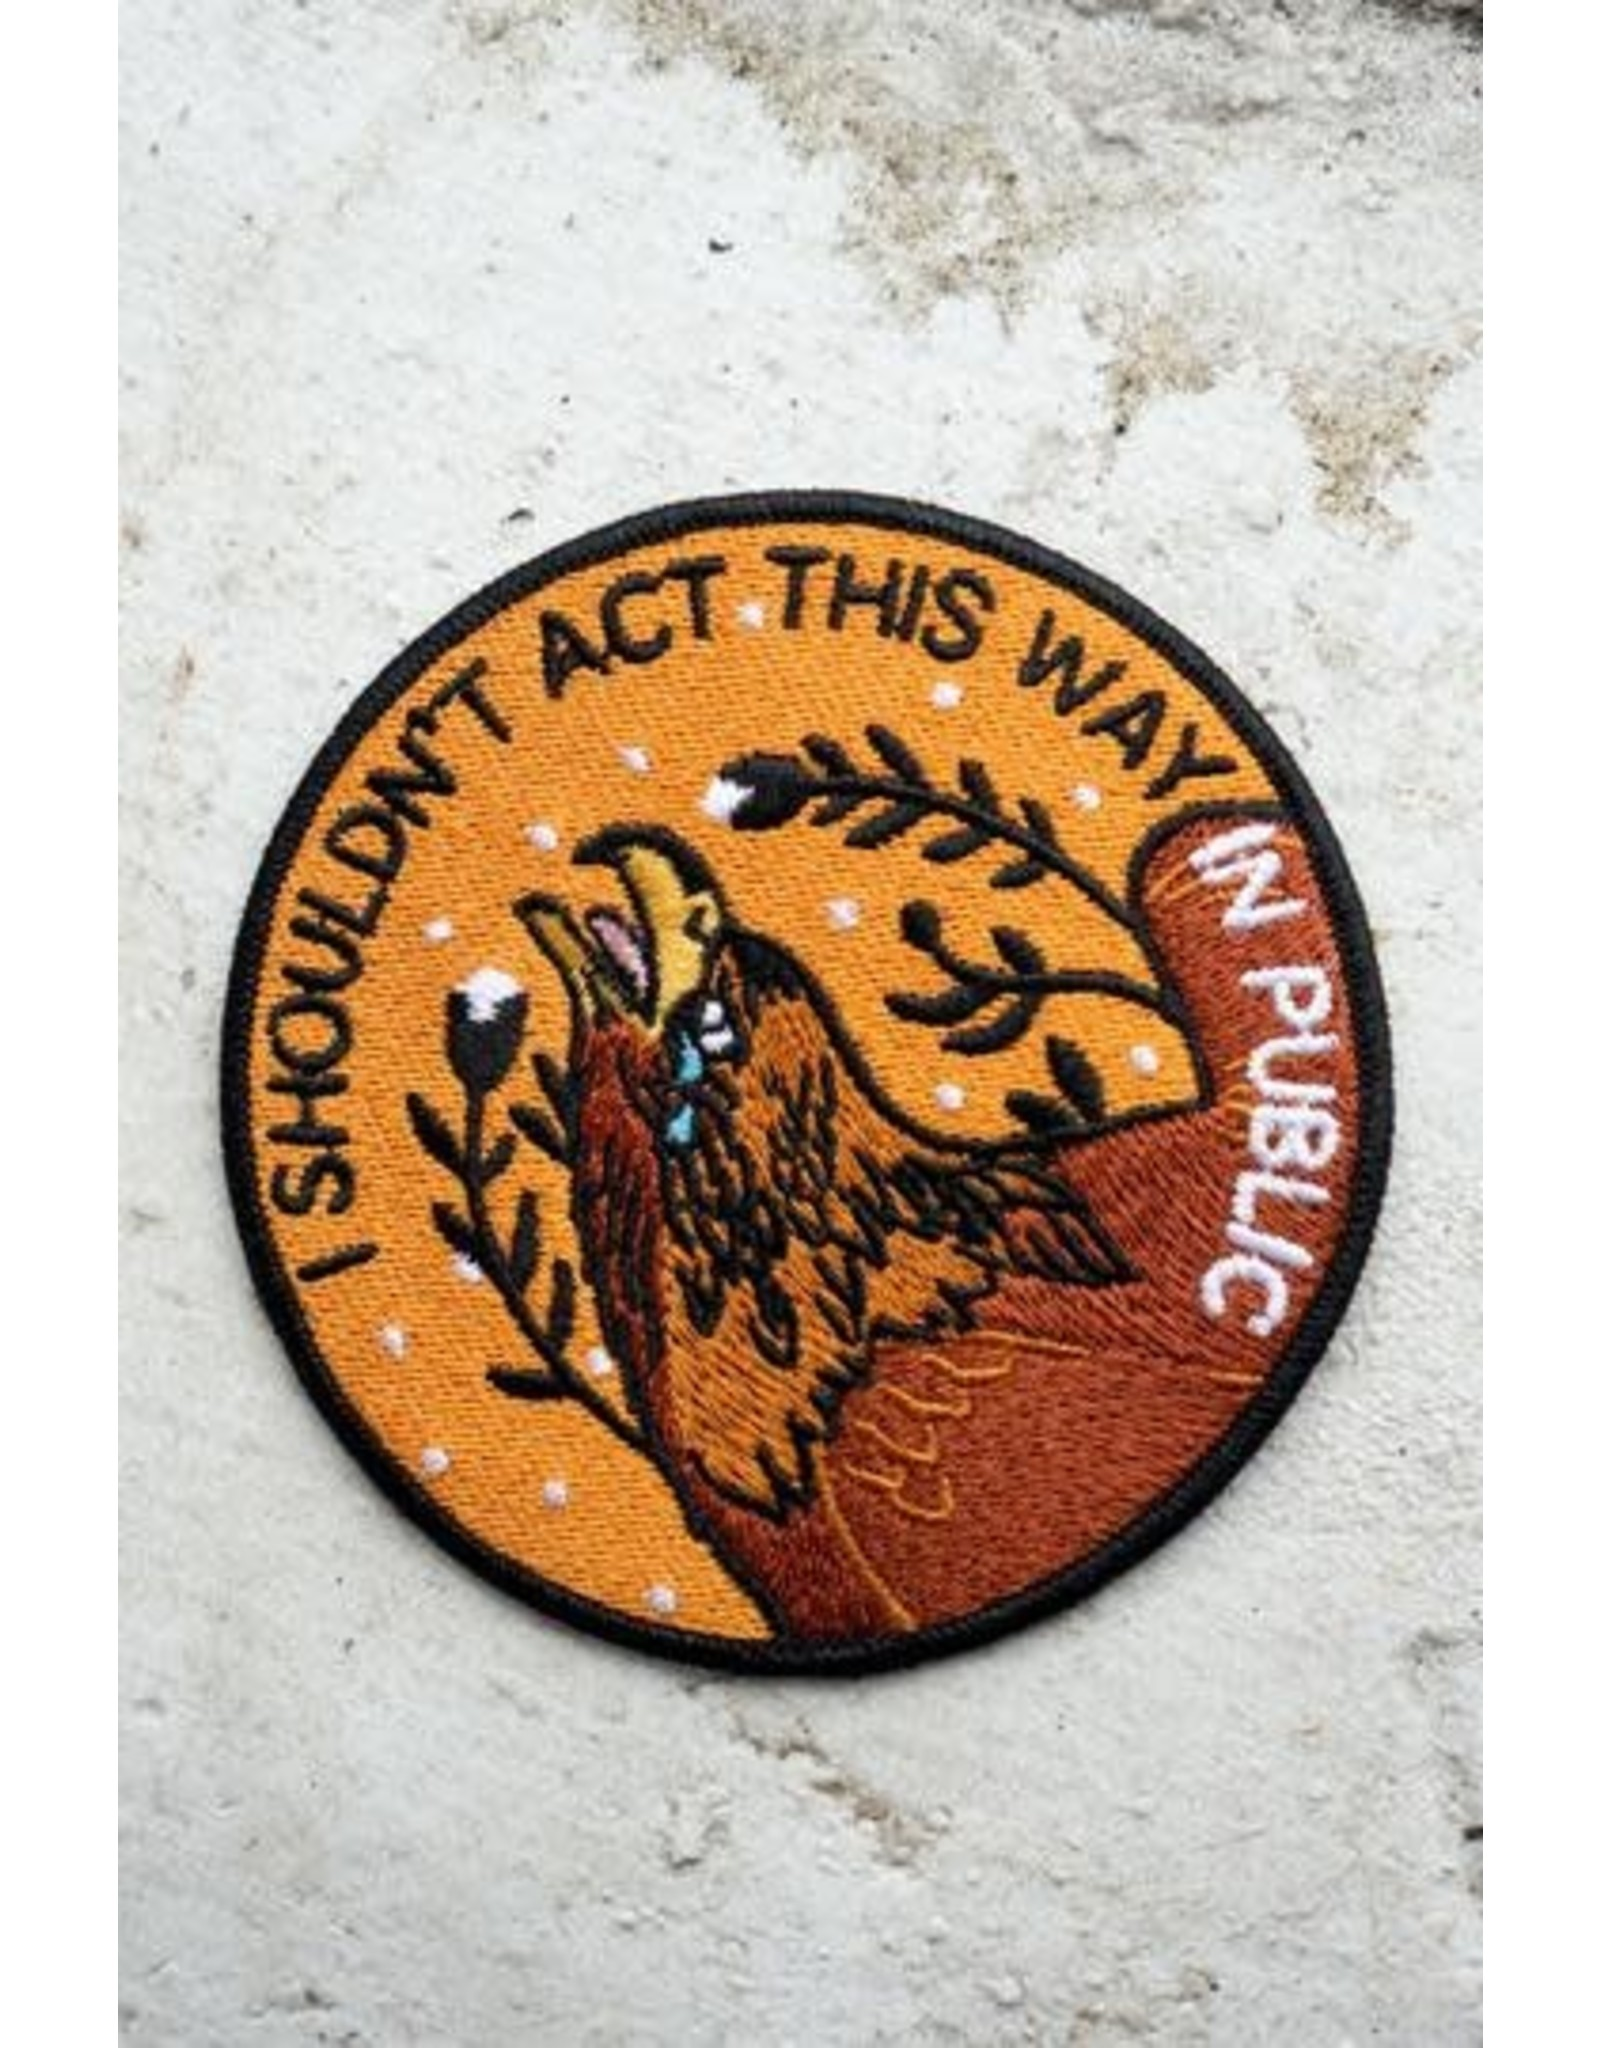 Stay Home Club - Iron On Patch/I Shouldn't Act Patch